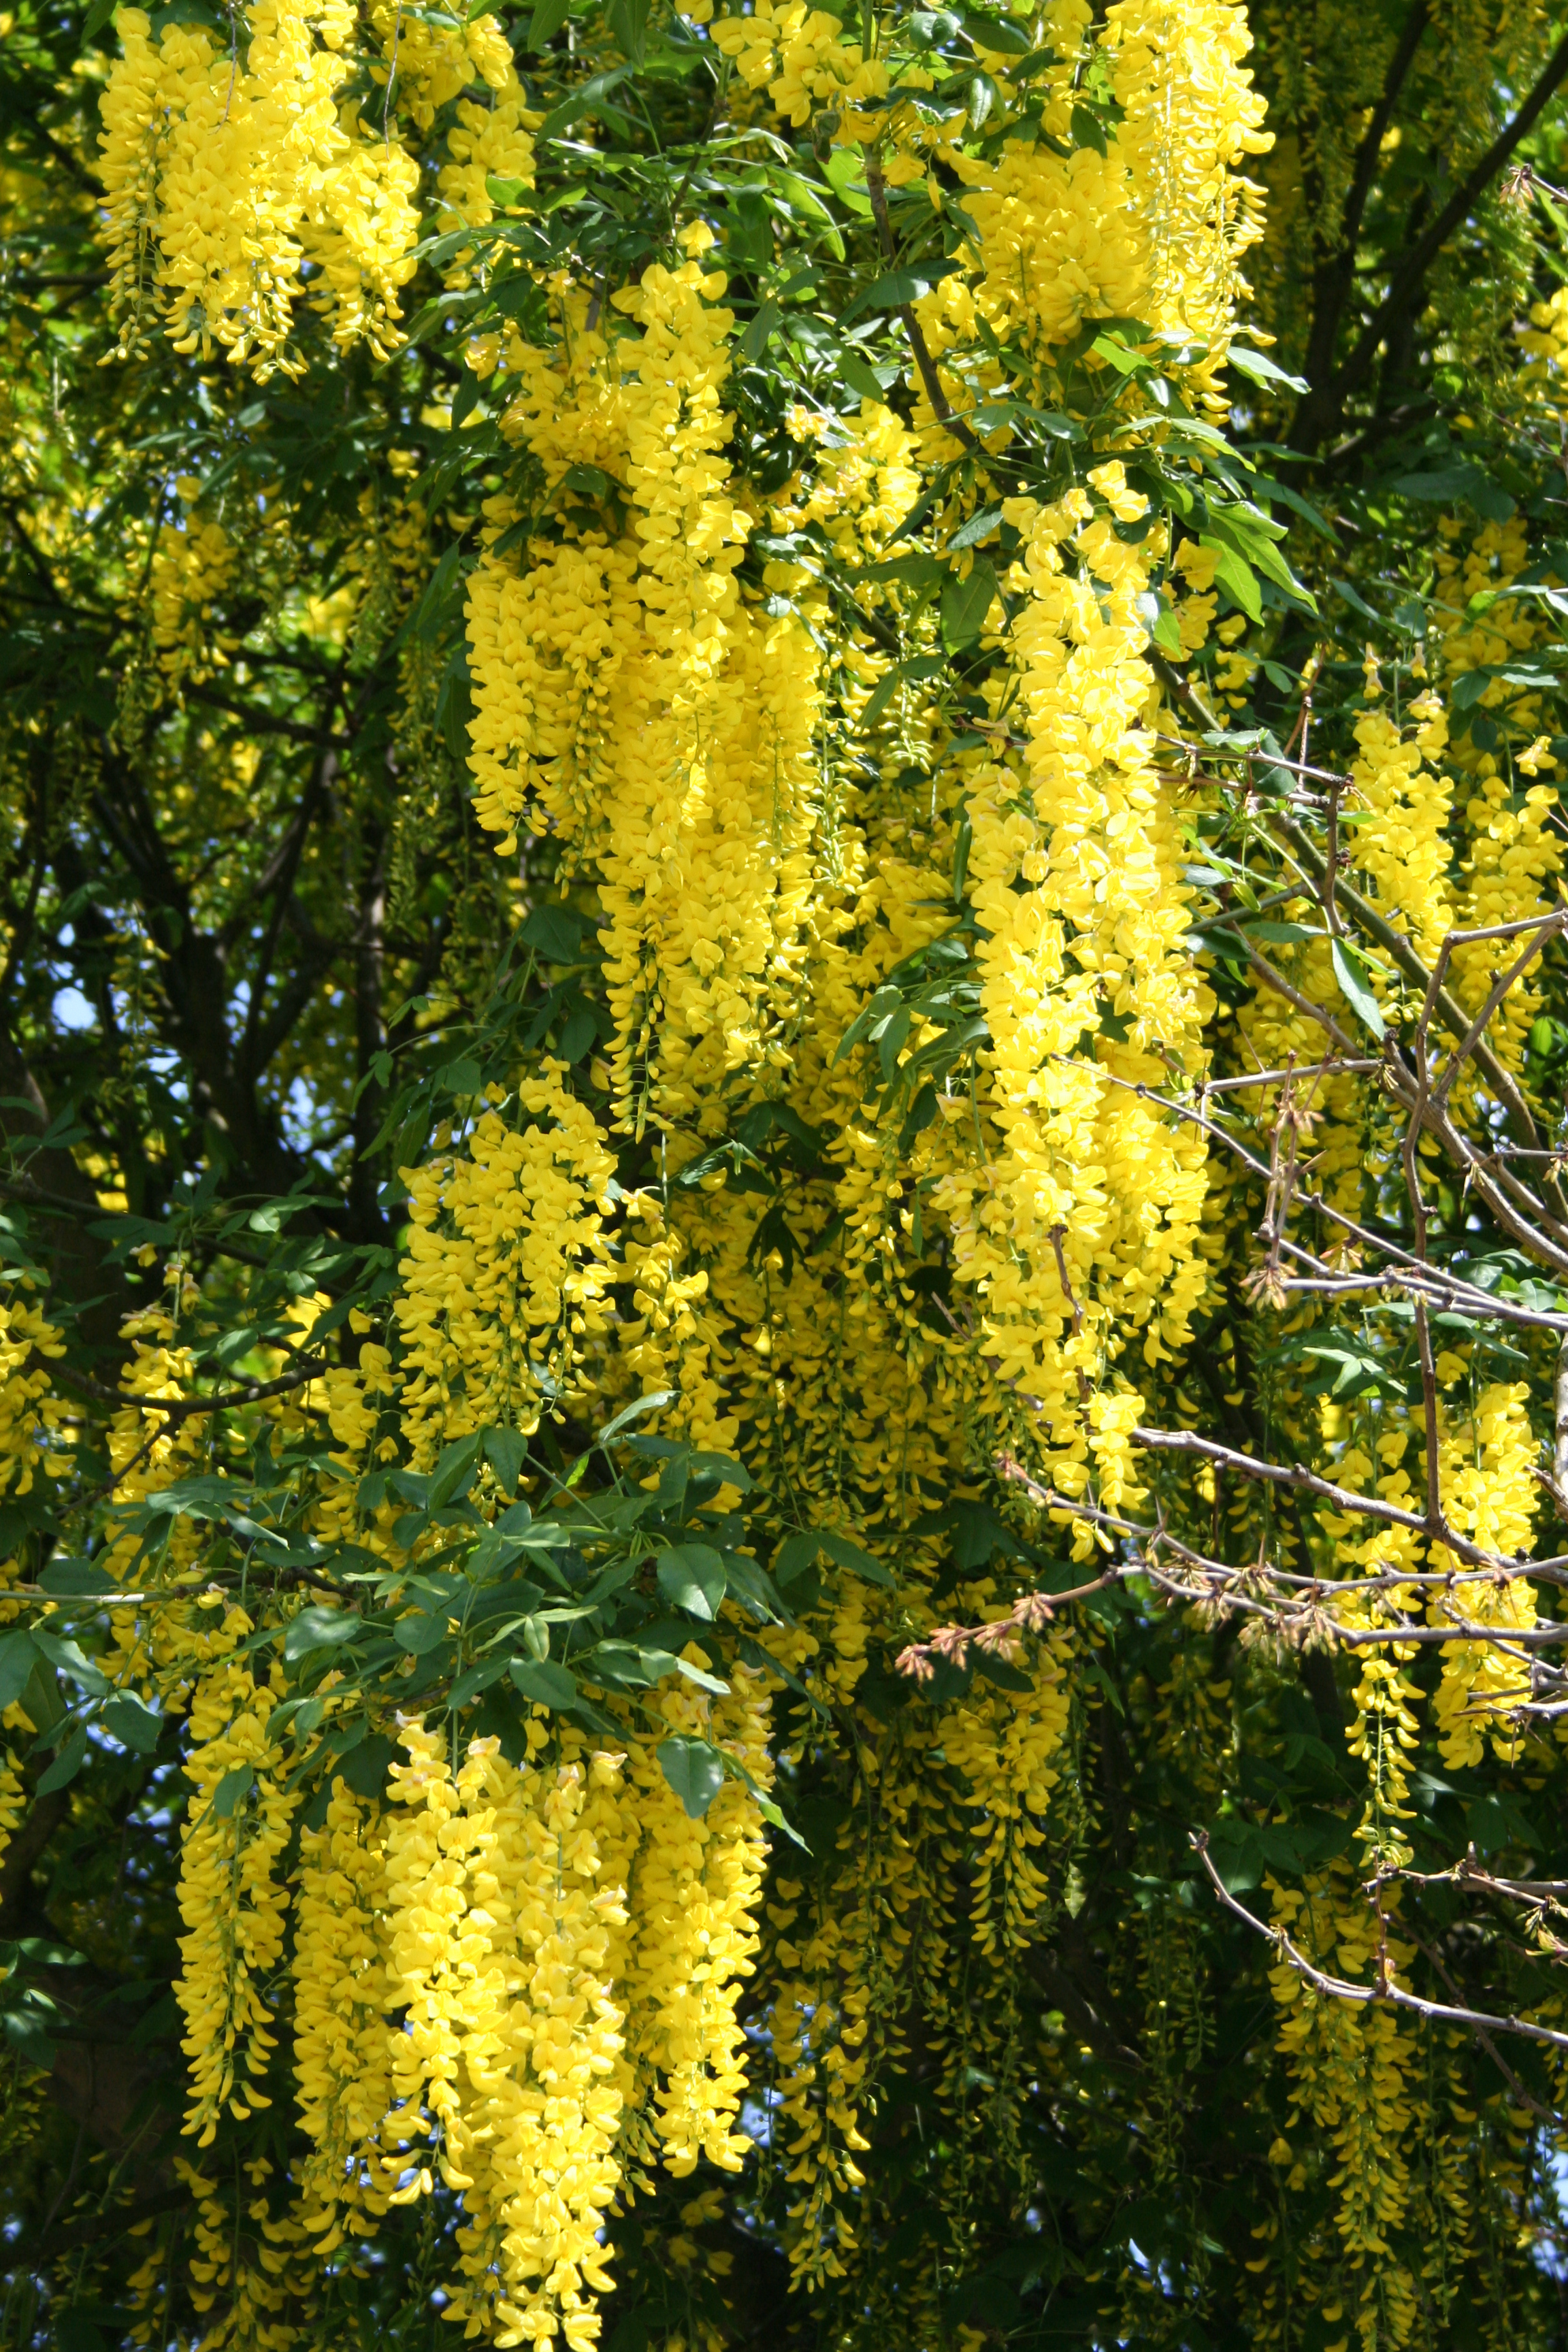 The zingy yellow chains of blooms of Laburnum x watereri'Vossii' in late spring and early summer (Thinkstock/PA)